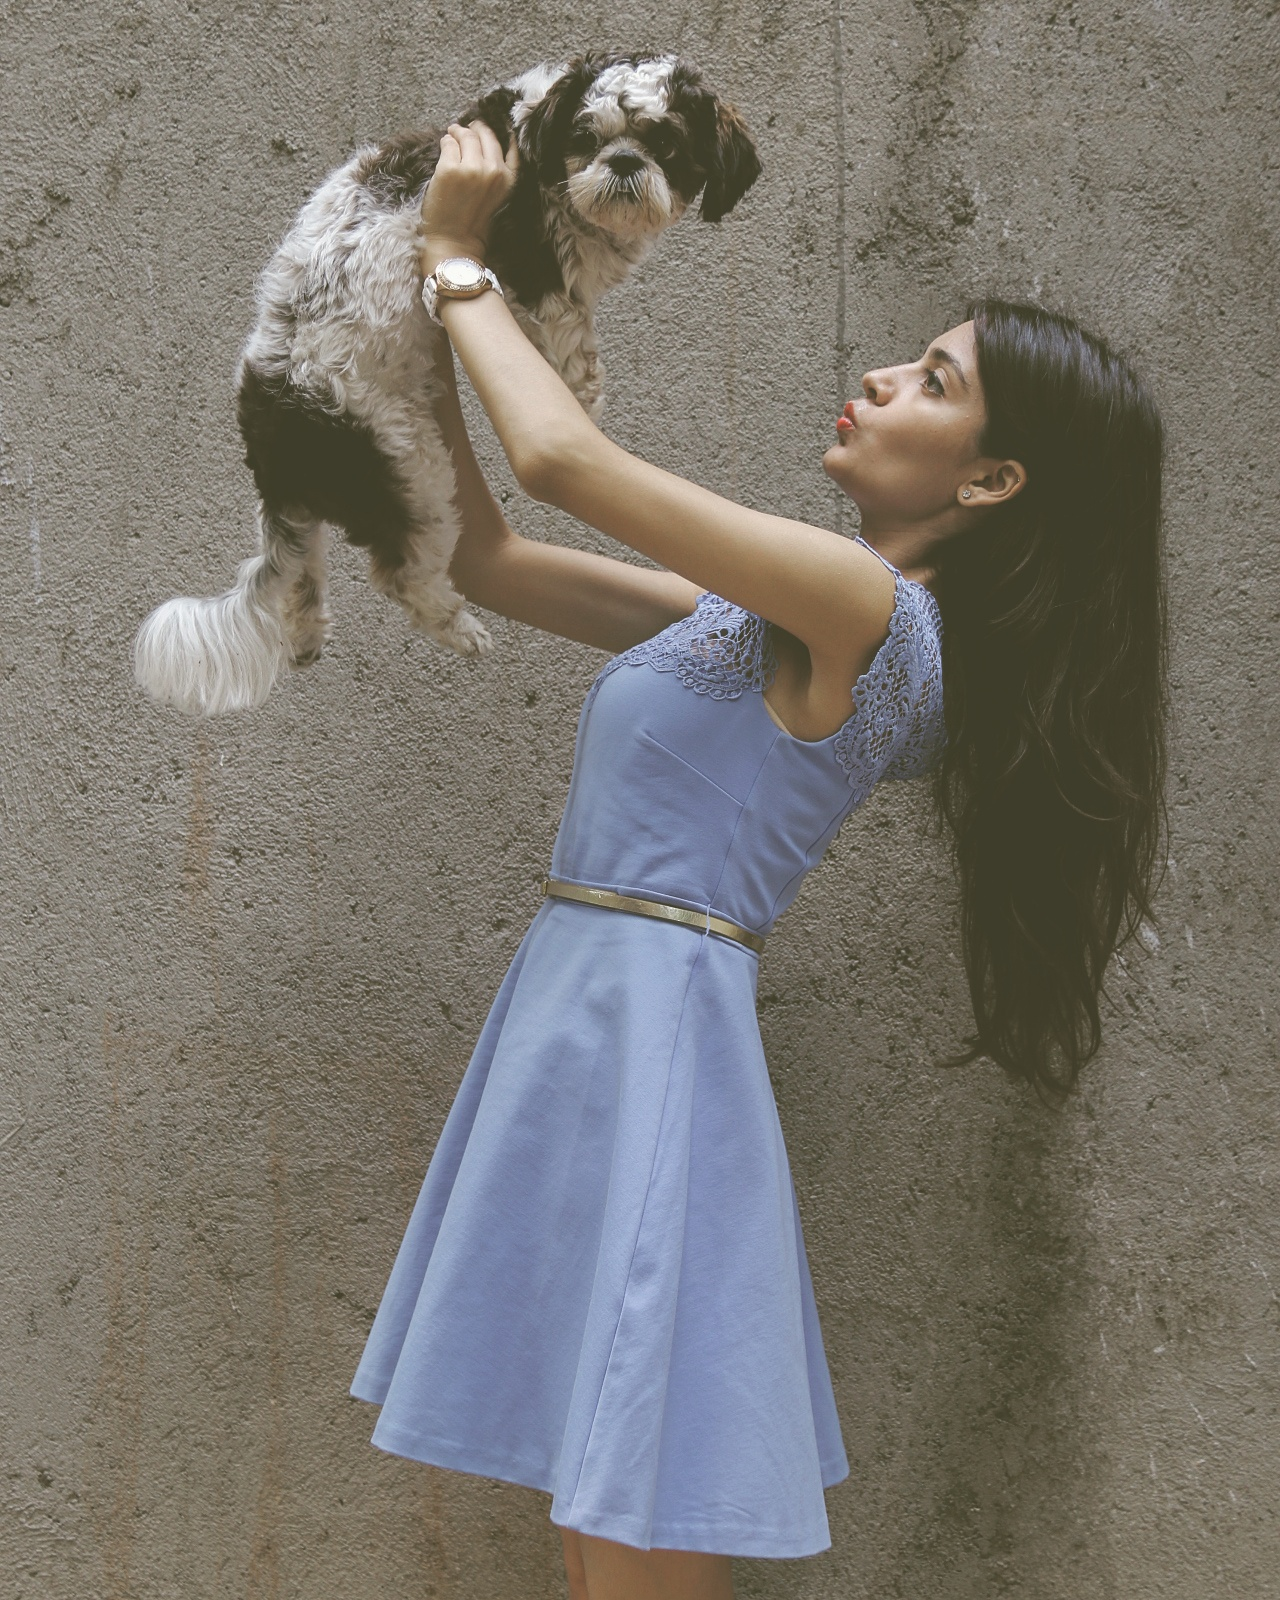 meet-gauri-awasthi-writer-on-ttt-buzzfeed-india-and-co-founder-of-the-vegan-wardrobe-ss-interview